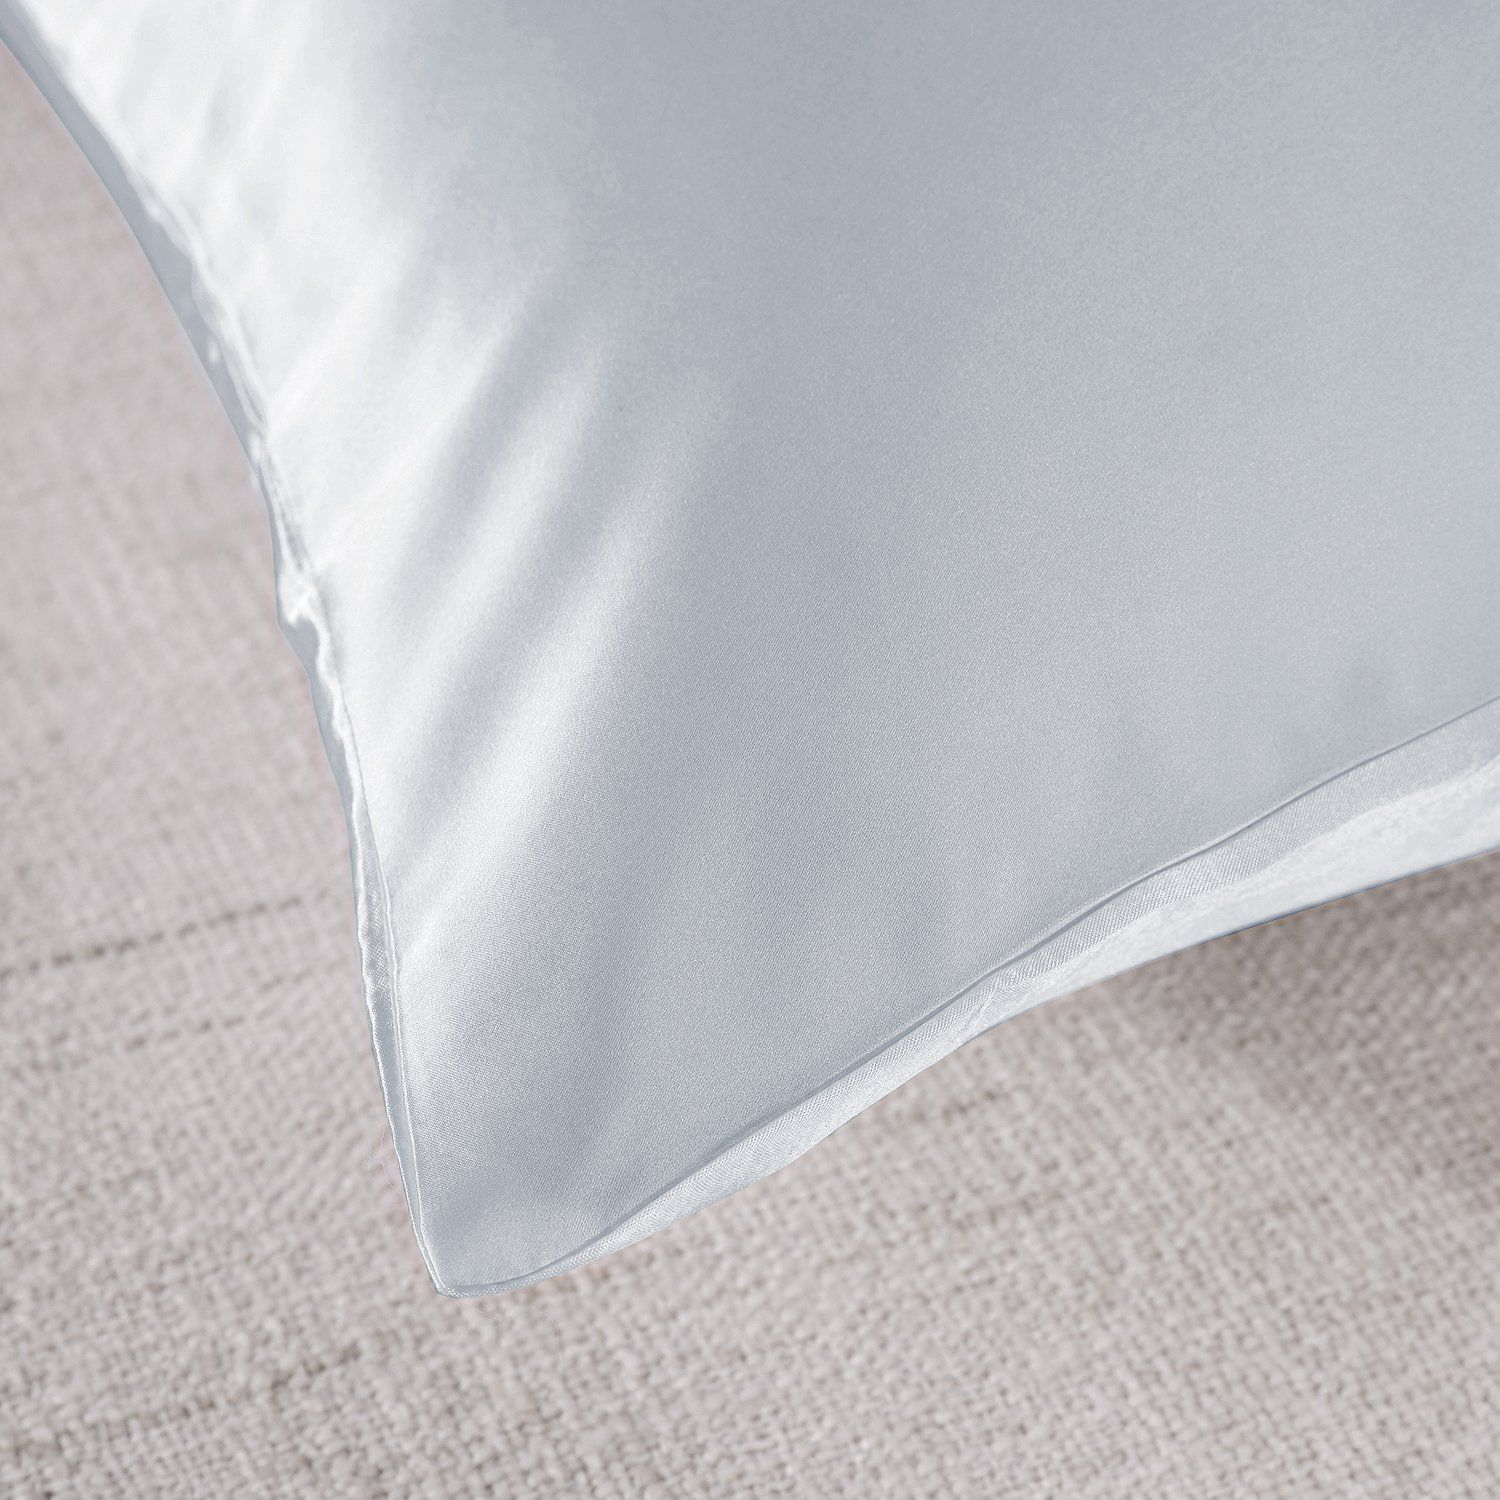 Royal-Comfort-Mulberry-Soft-Silk-Hypoallergenic-Pillowcase-Twin-Pack-51-x-76cm thumbnail 38